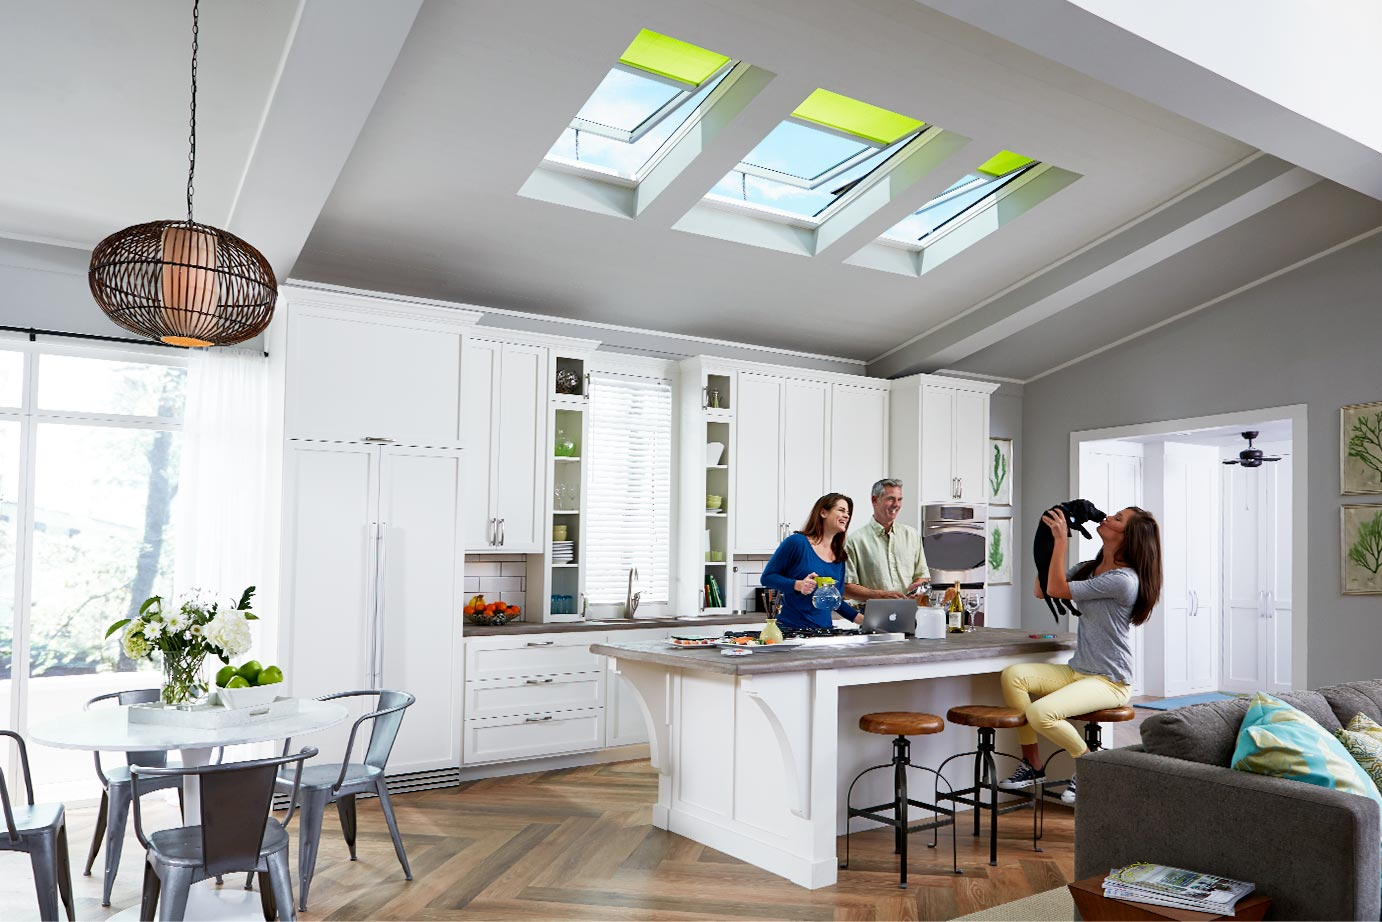 kitchen green blinds?h=922&la=en&w=1382&cc=grid_12&key=145917965341898&sw=960 velux frequently asked questions velux klf 100 wiring diagram at gsmportal.co